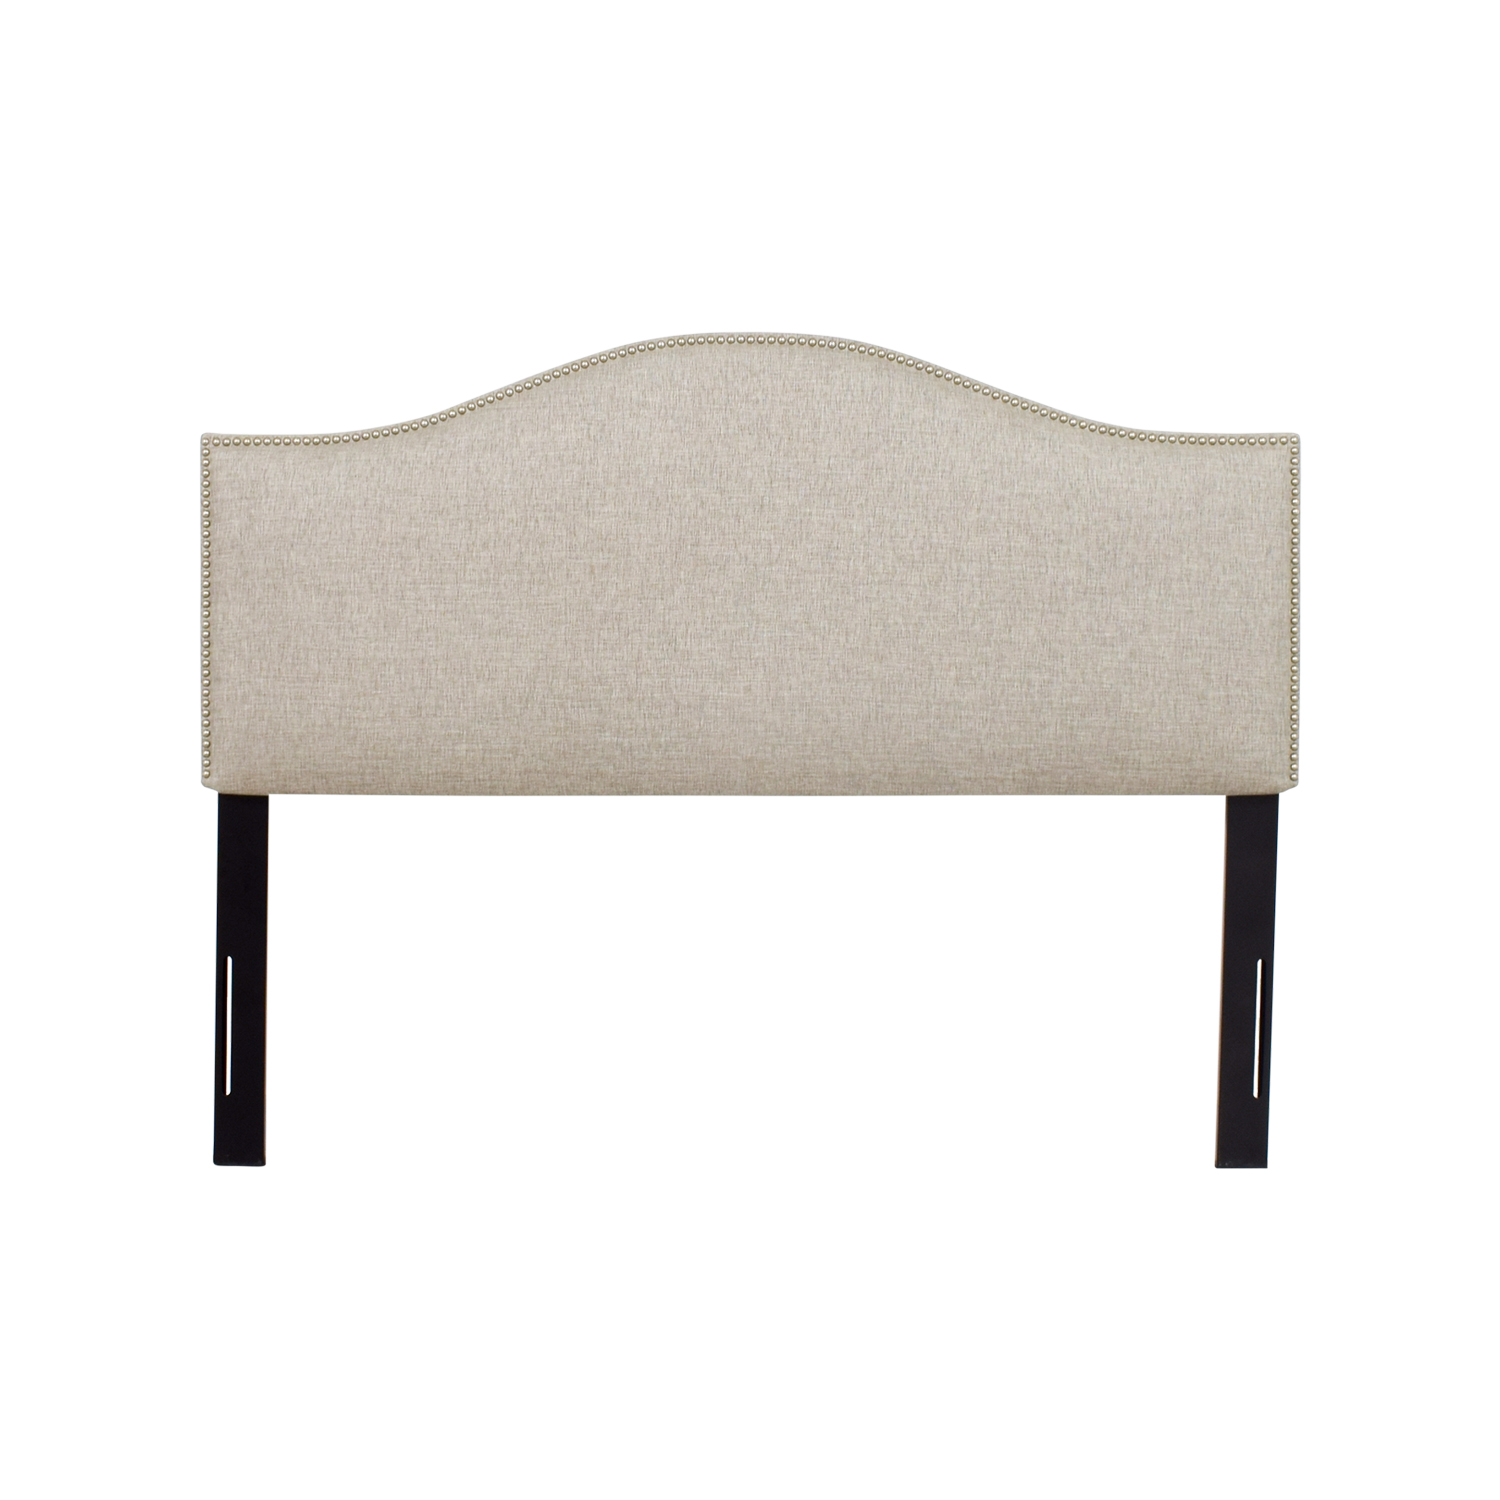 100 Top Furniture Online India Top 6 Reasons To Buy